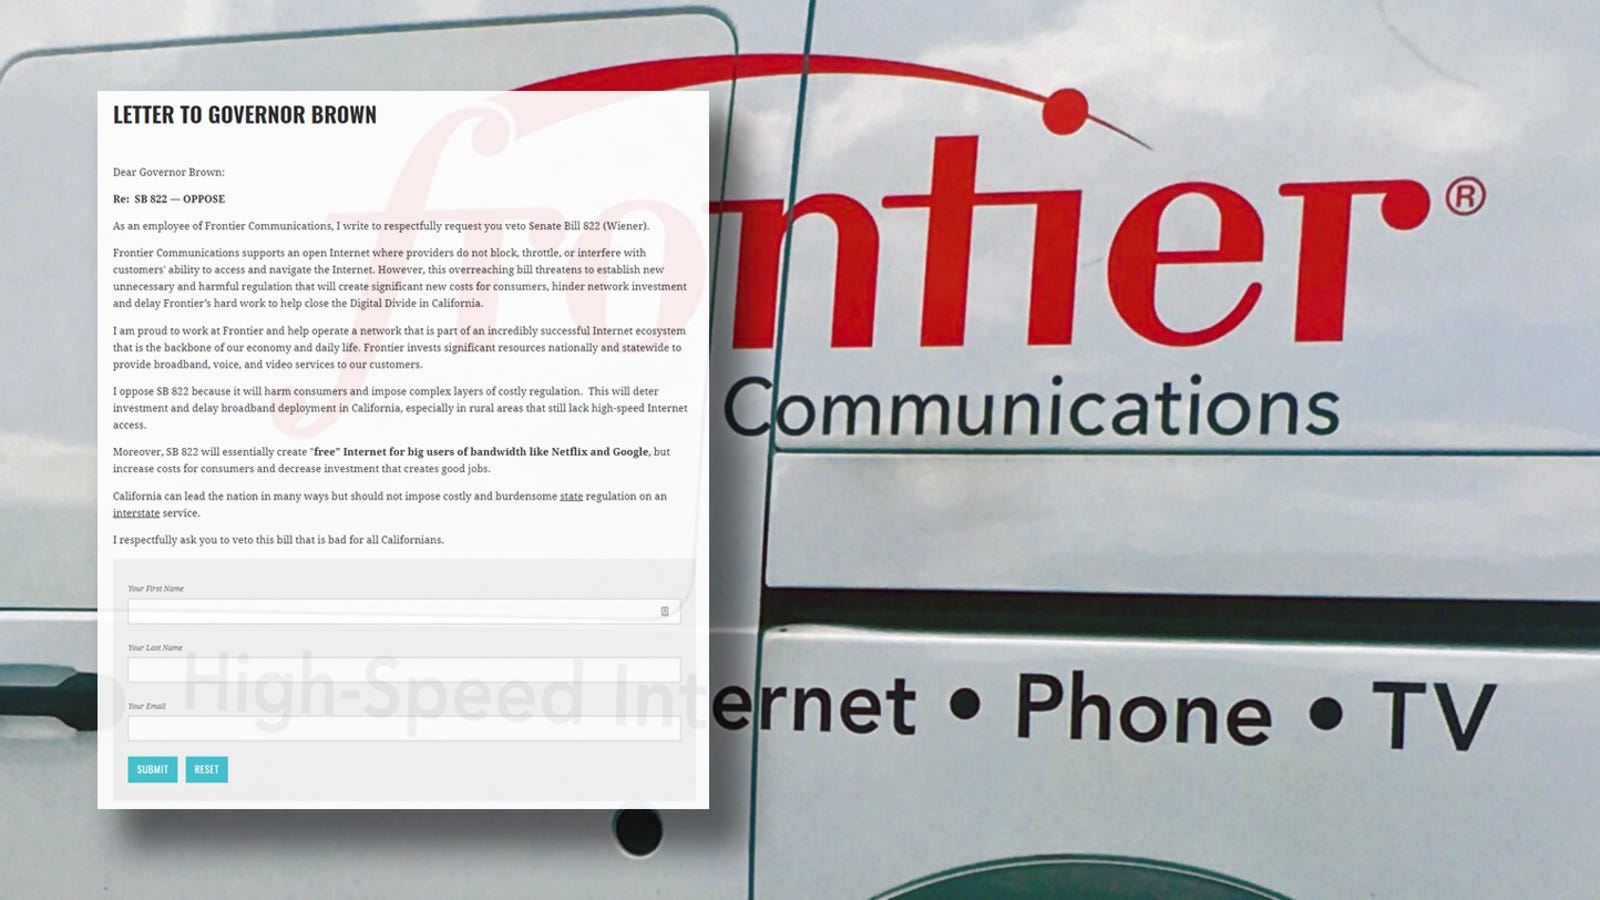 Frontier Asks Employees to Sign Anti-Net Neutrality Petition